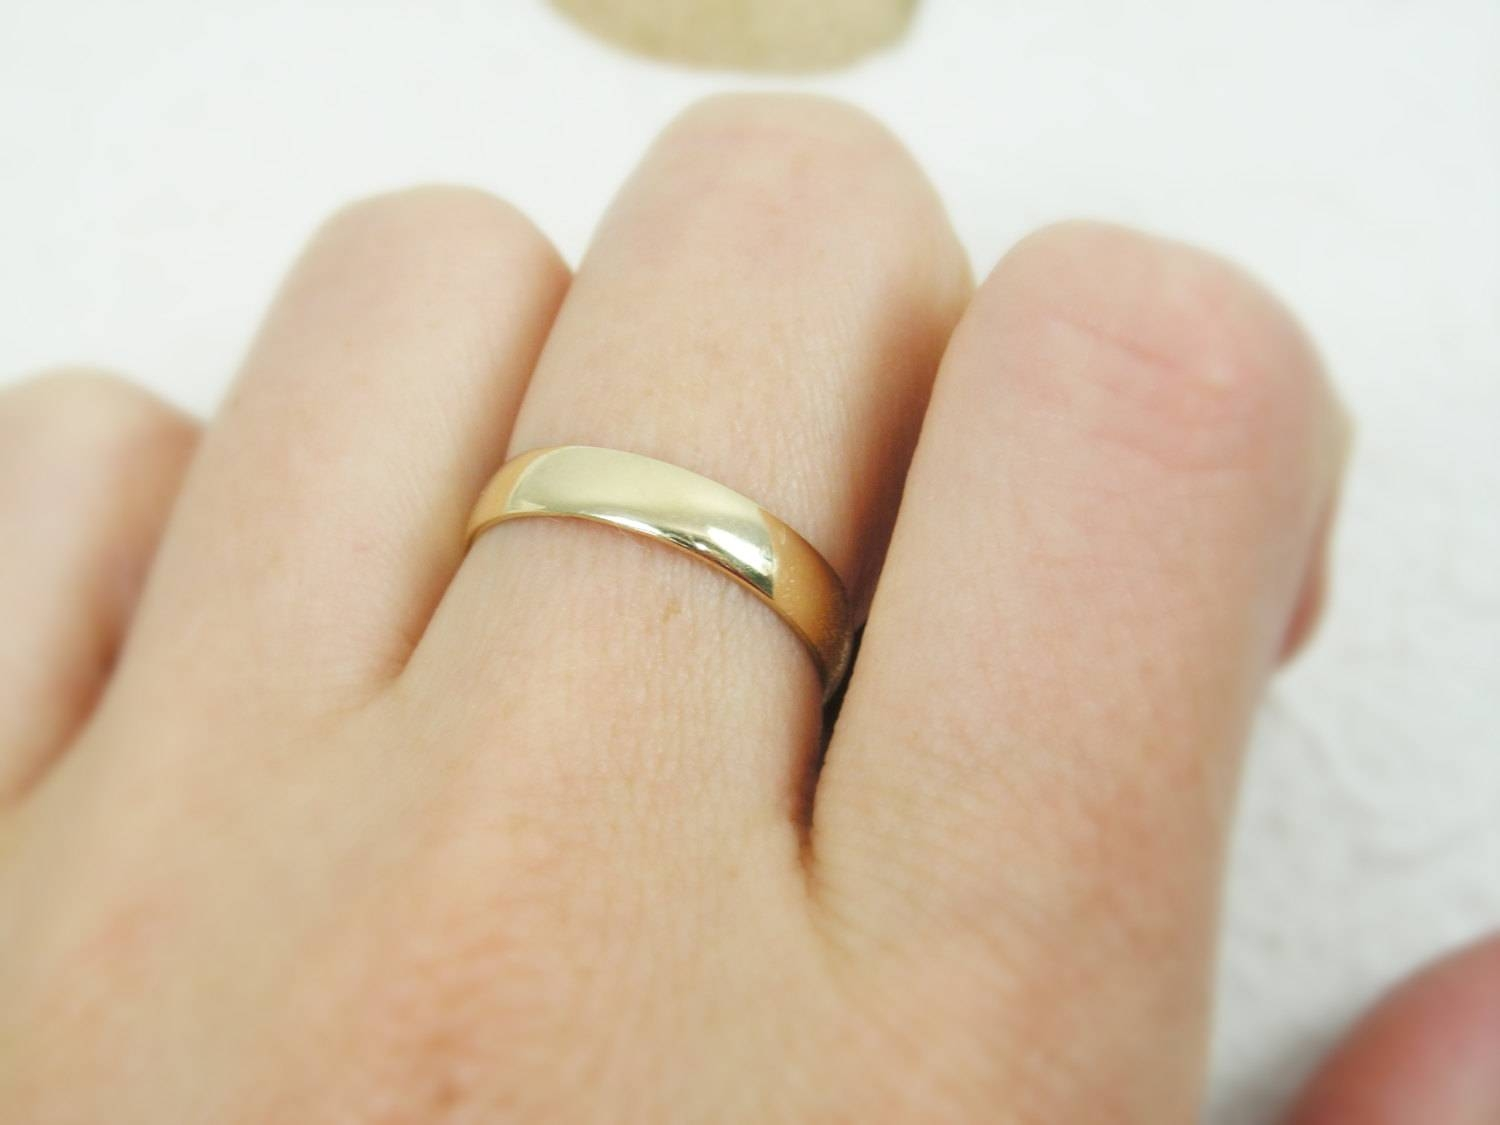 Classic 4Mm Rounded Wedding Band. 14K Yellow Gold. Unisex Throughout Most Recently Released Classic Gold Wedding Bands (Gallery 8 of 15)